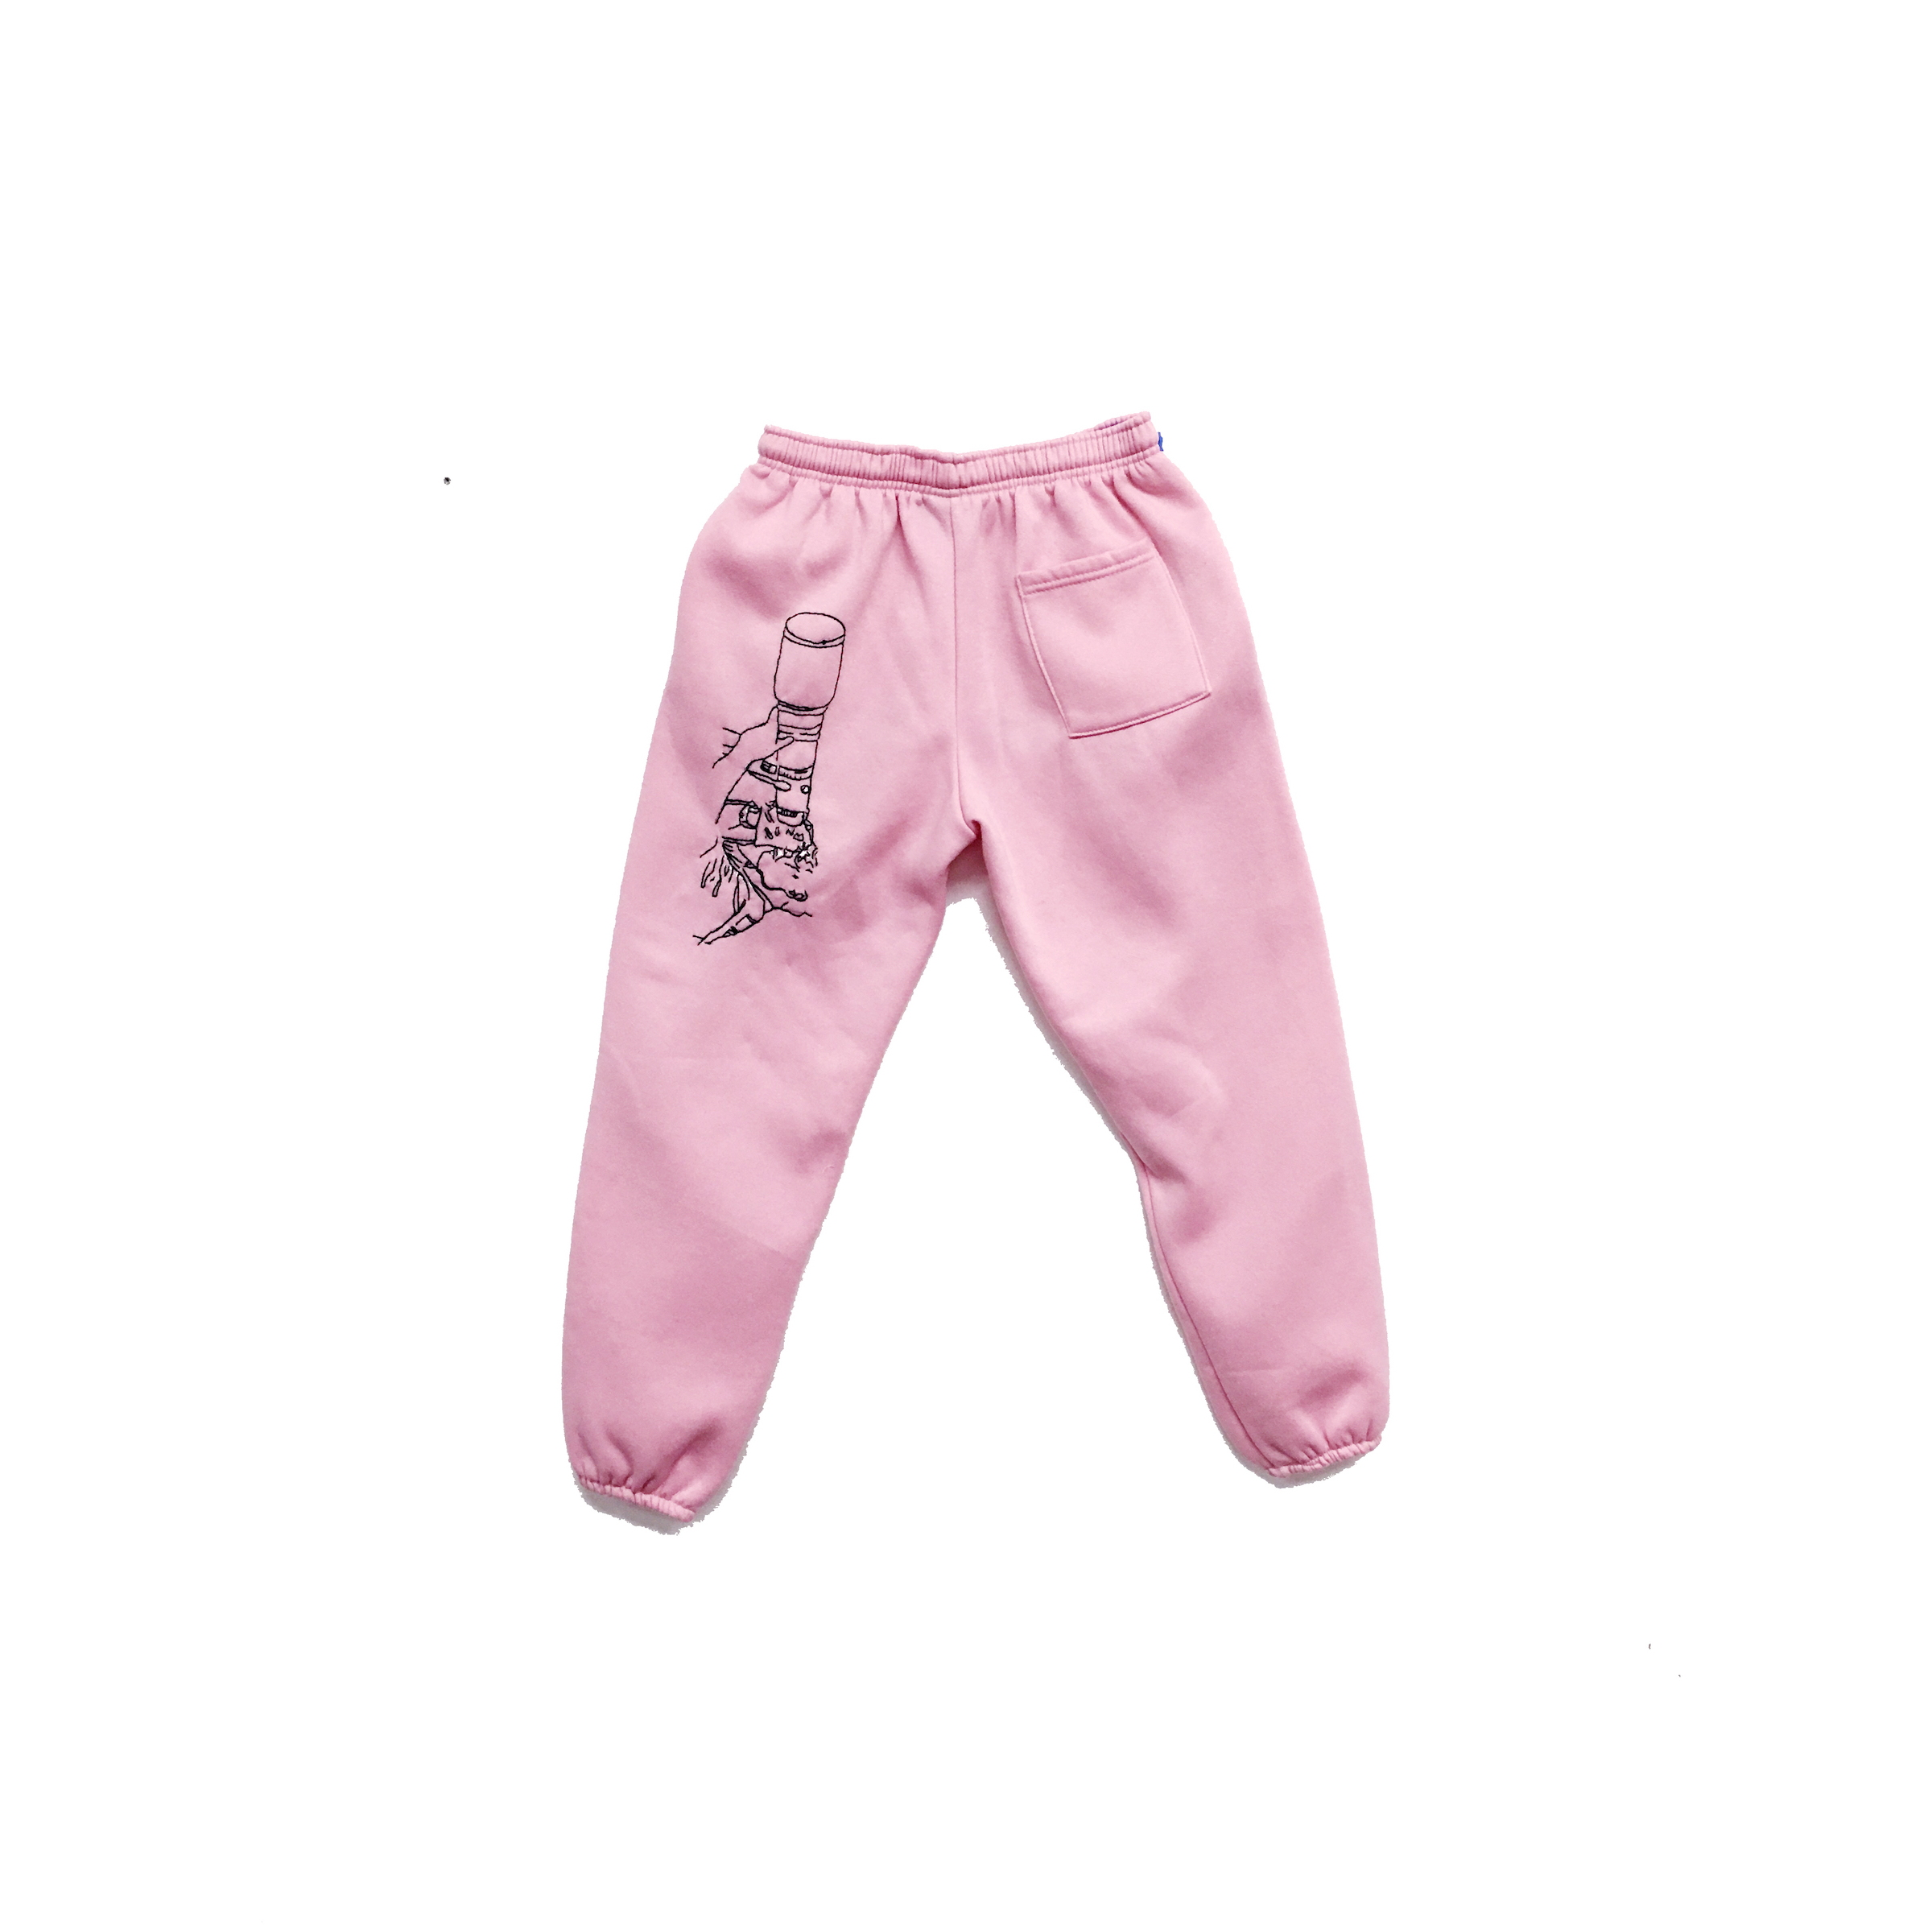 JPW3,    Pink Grunt , 2017, sweat pants, dimensions variable